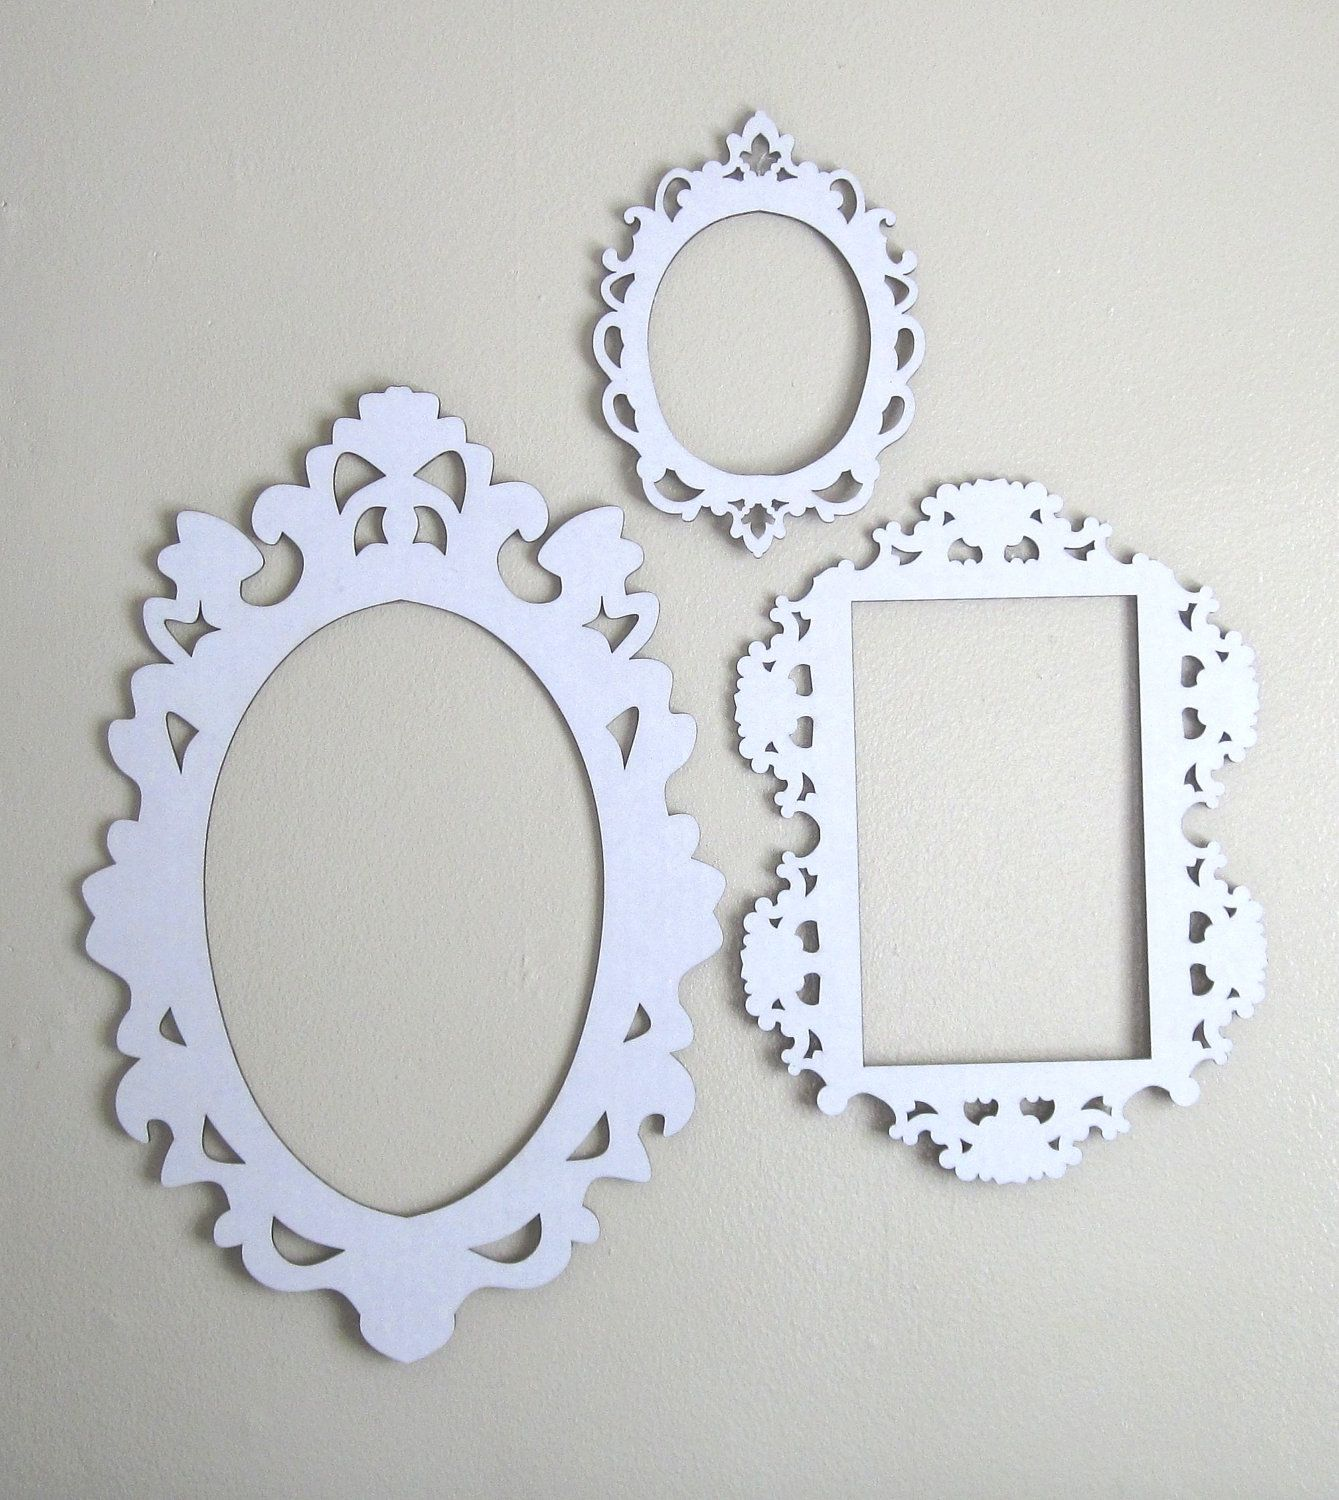 White Cardboard Frames - Set of Three | Third, Etsy and Oval frame